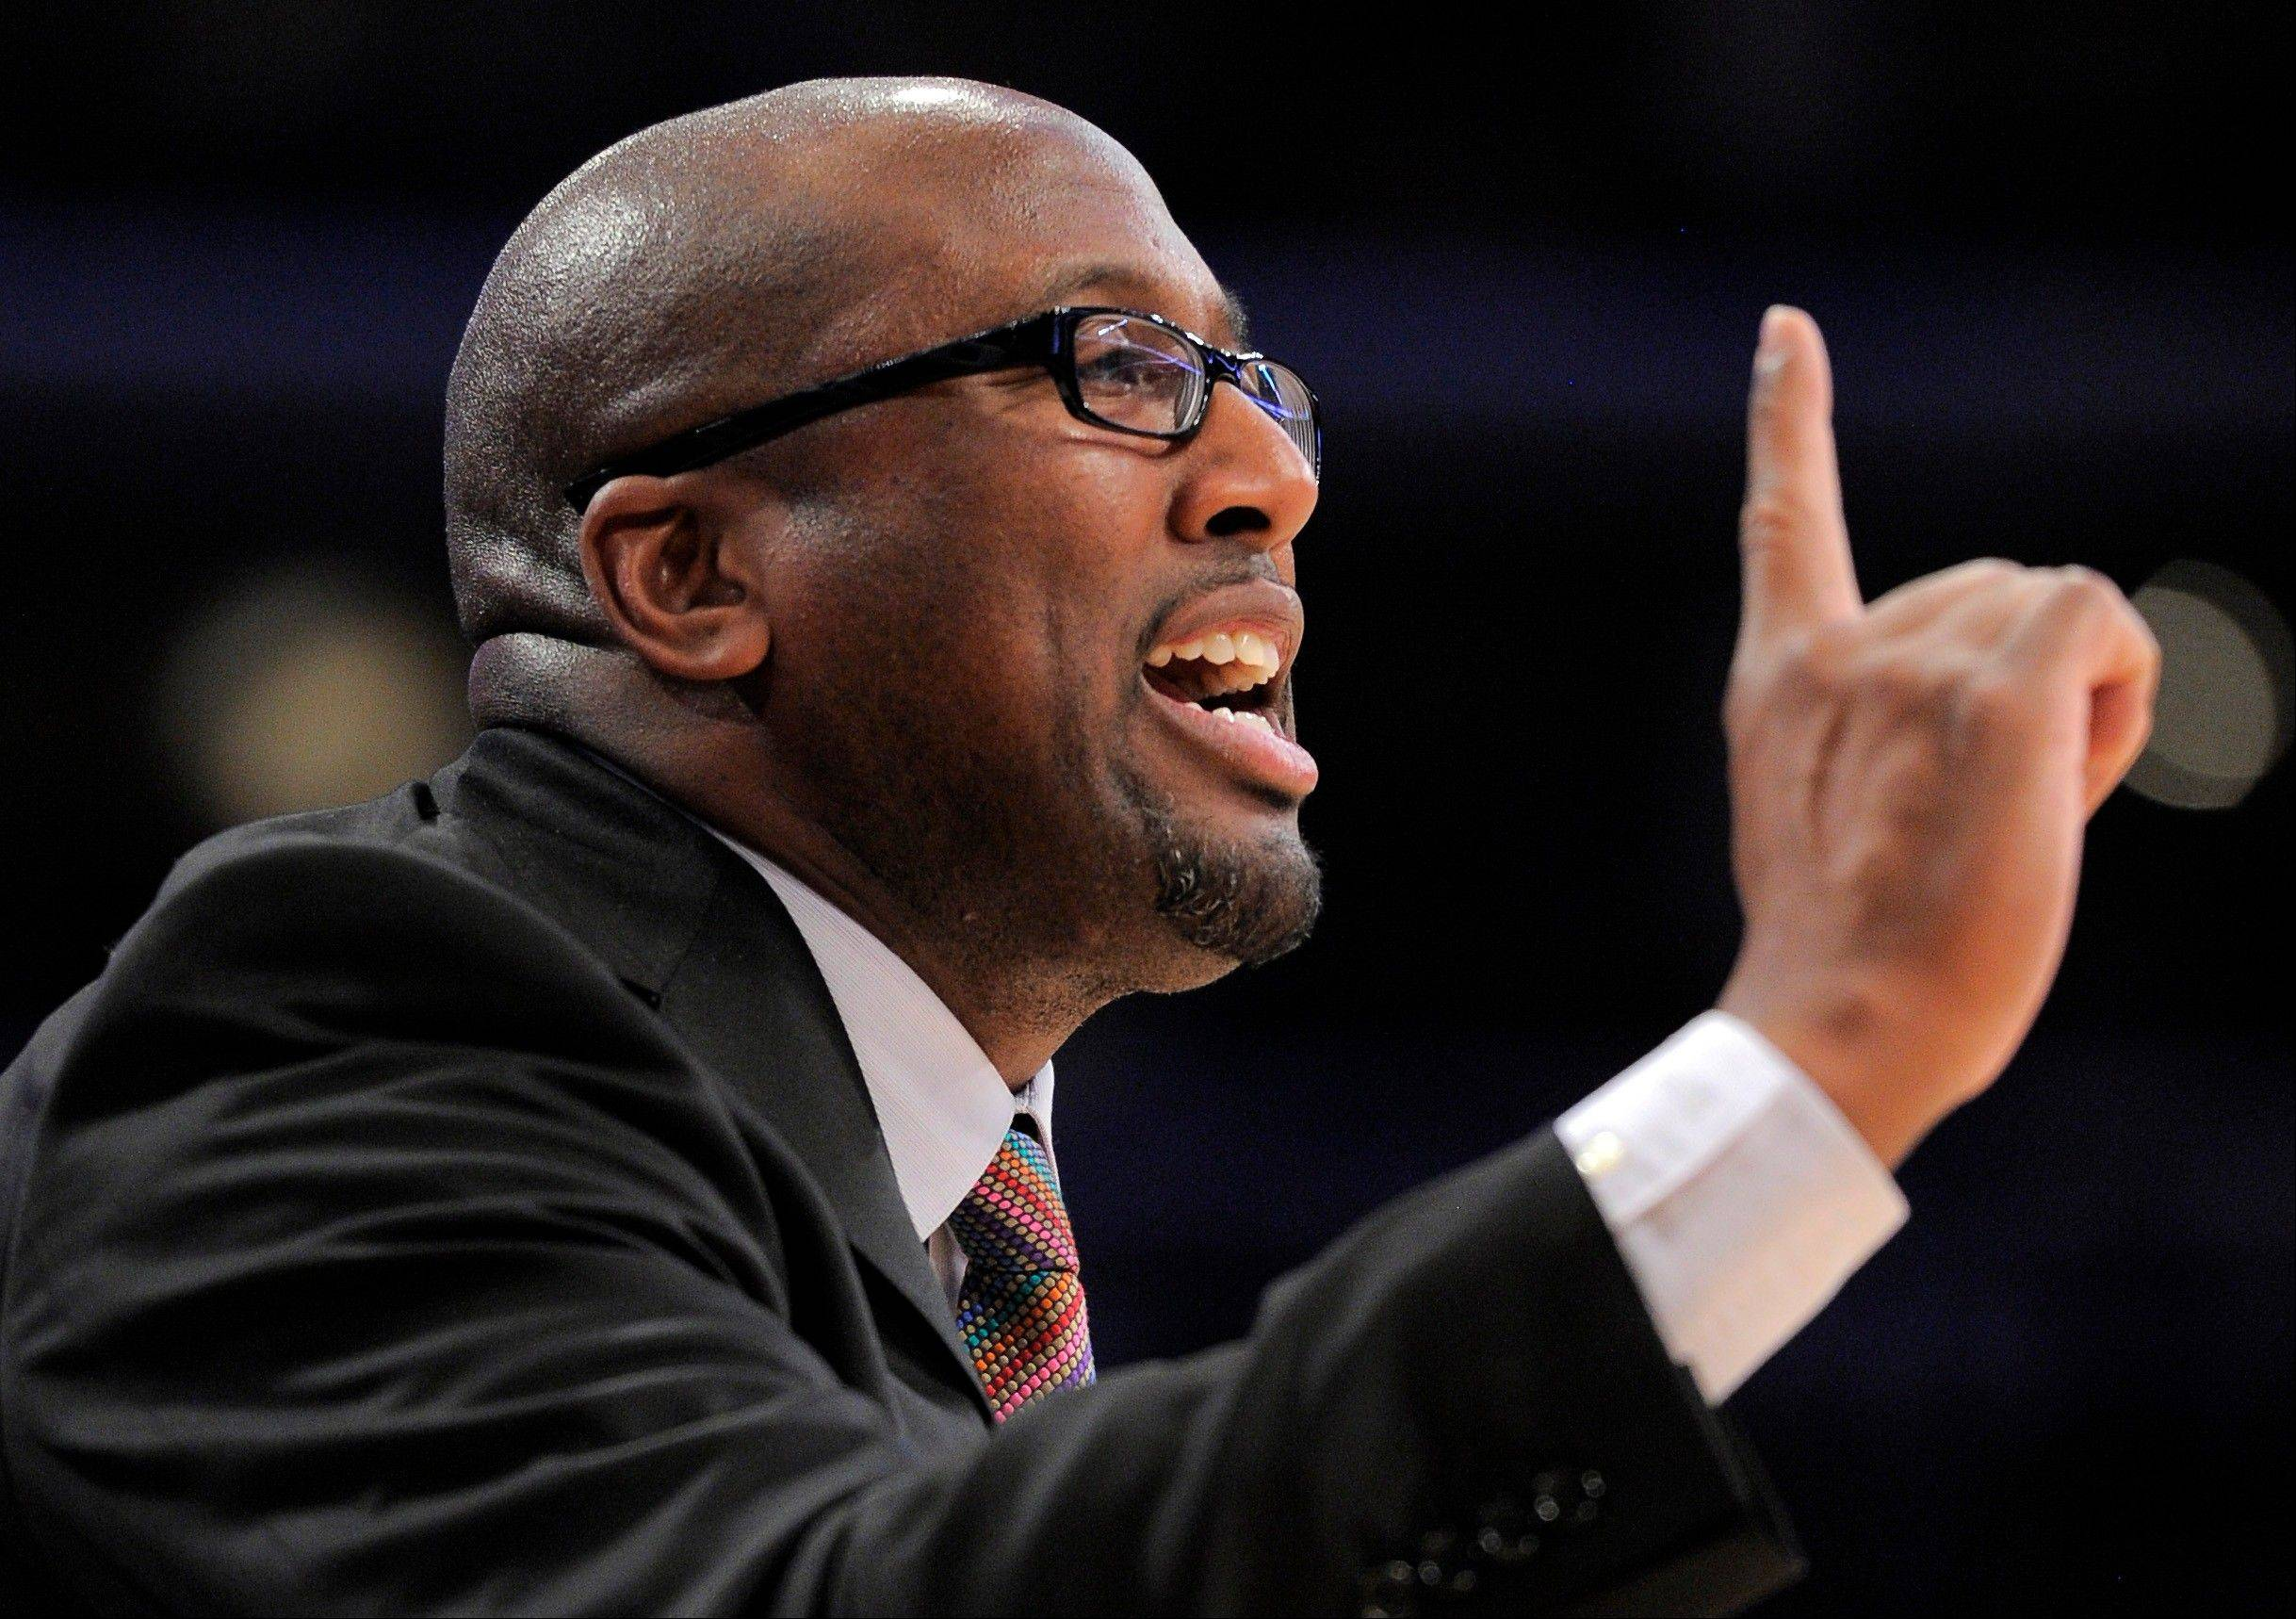 FILE - In this Dec. 25, 2011 file photo, Los Angeles Lakers coach Mike Brown gestures during the second half of the Lakers' NBA basketball game against the Chicago Bulls, in Los Angeles. The Cavaliers intend to speak with former coach Brown about returning to the team. Brown was fired by Cleveland three years ago and replaced by Byron Scott, who was let go by the Cavs on Thursday after he went 64-166 in three seasons _ one of the worst stretches in team history. .